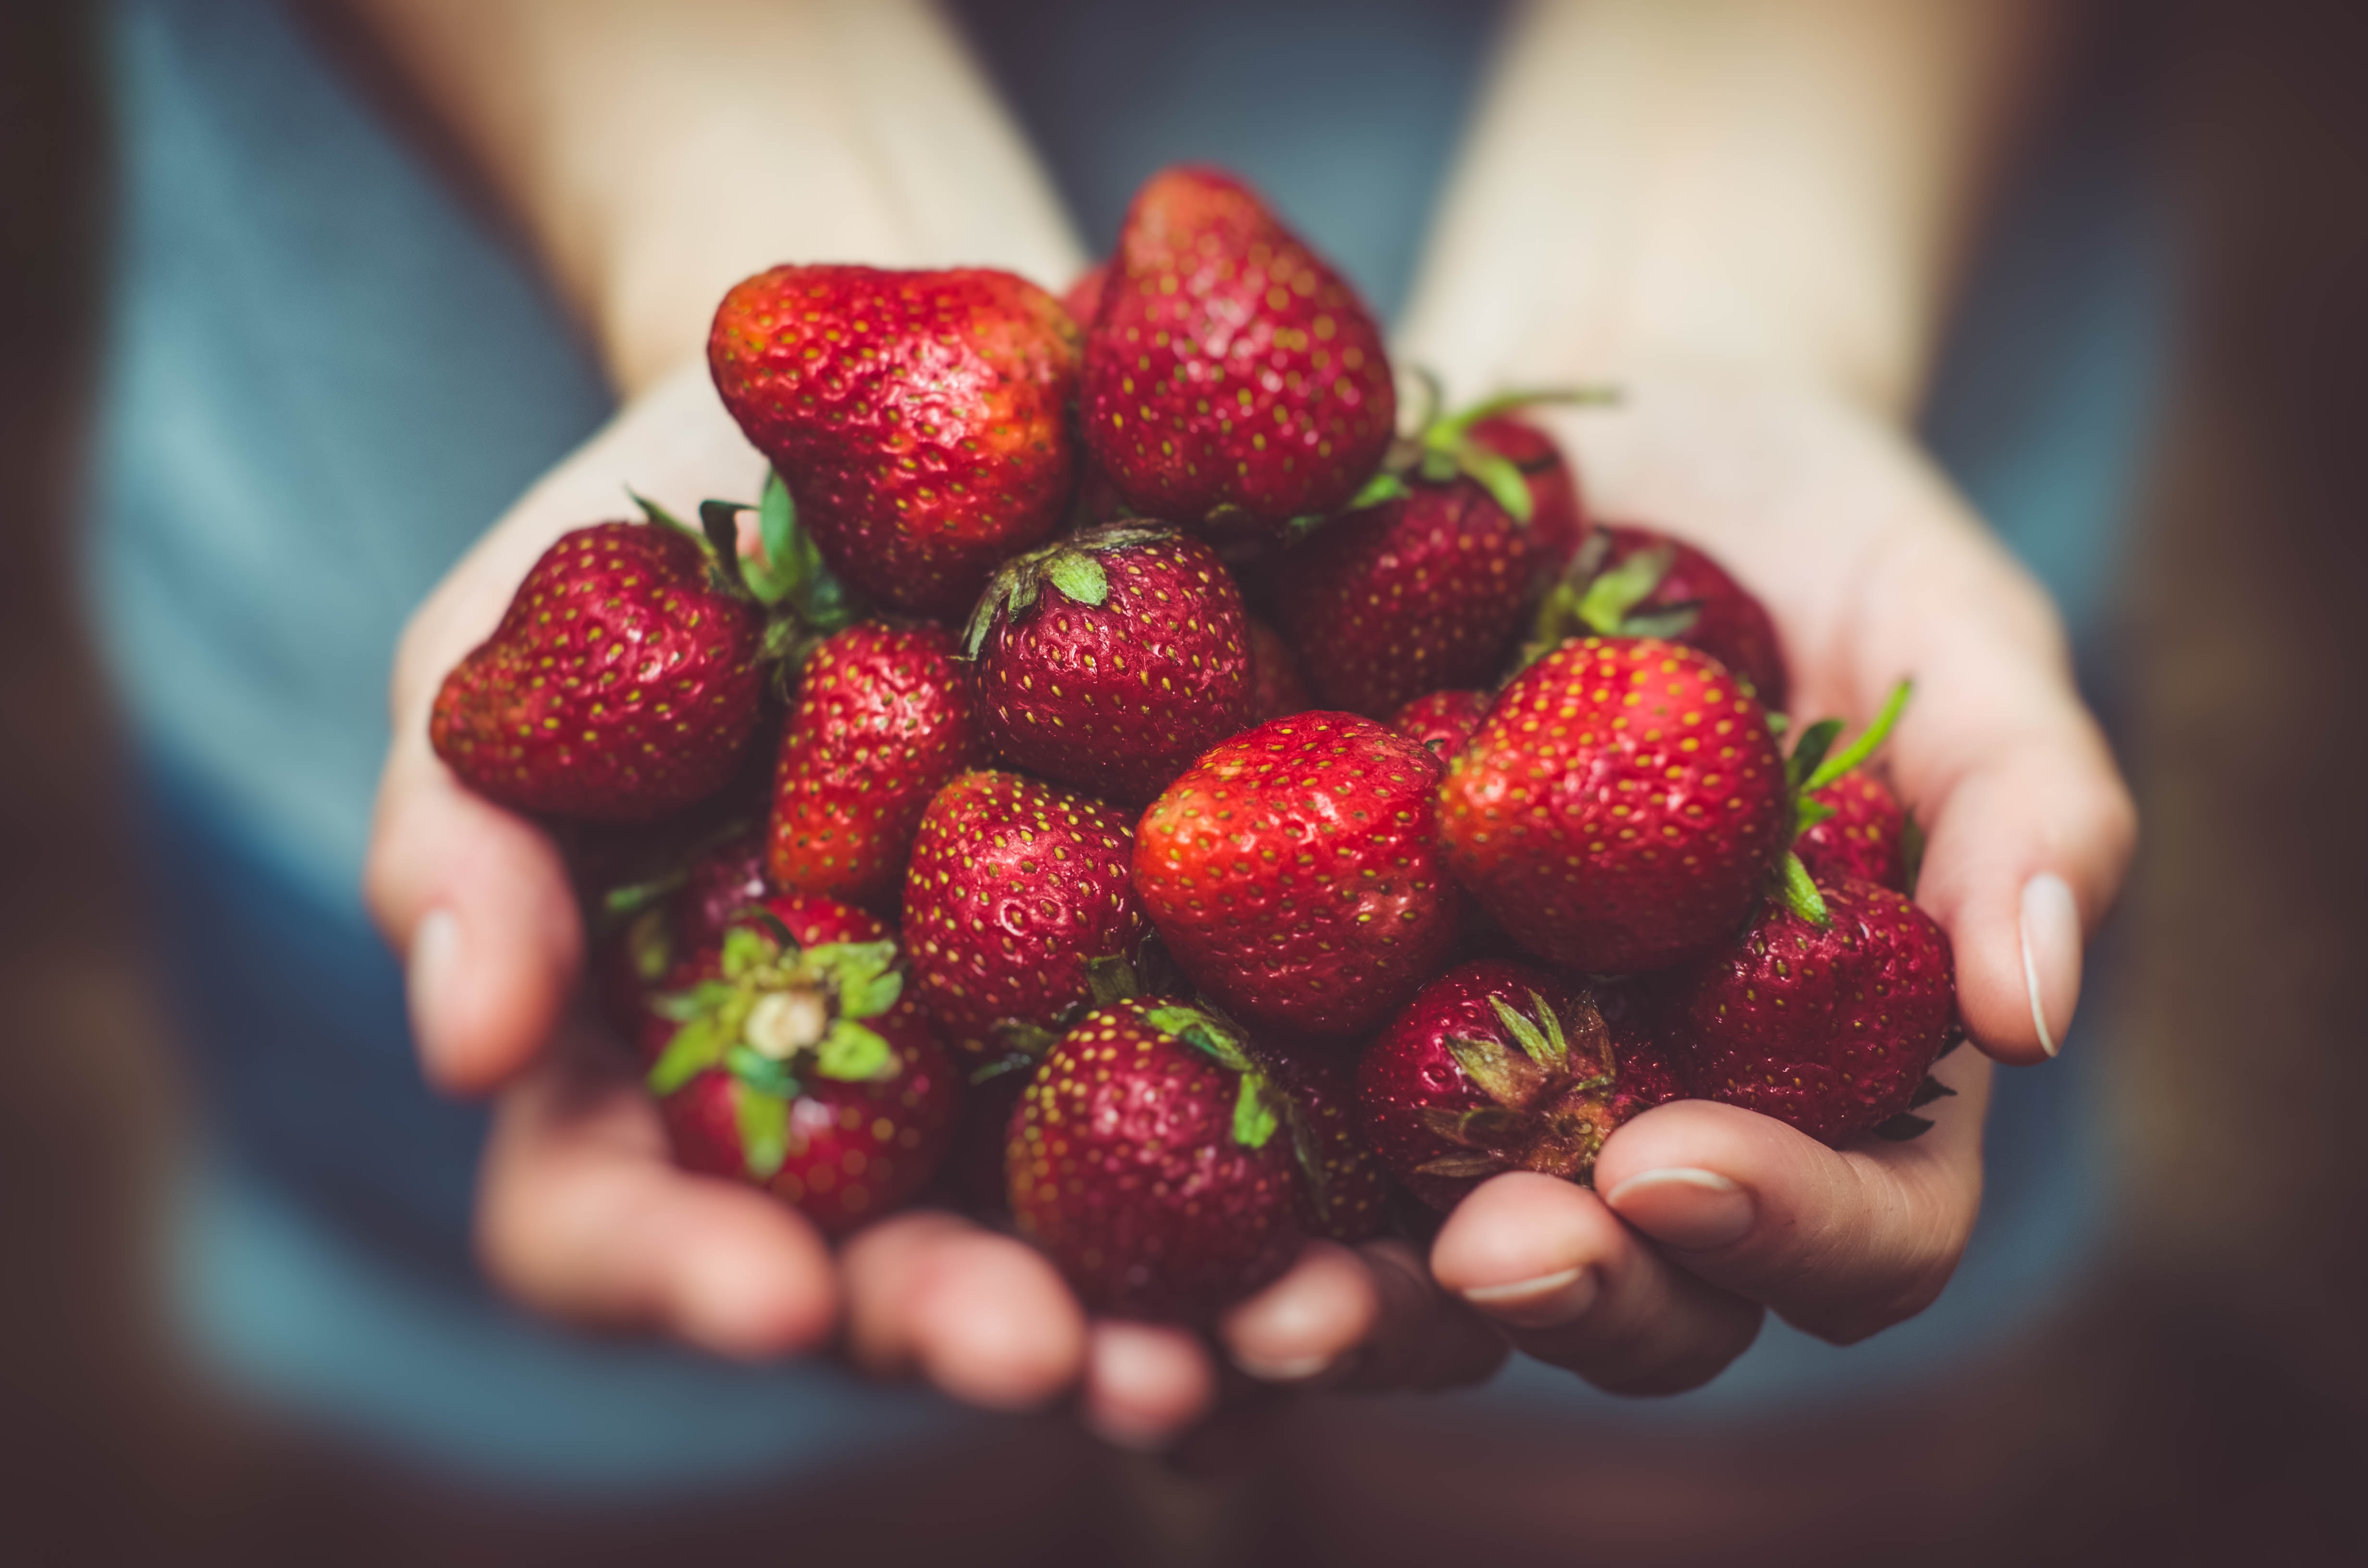 Photo of person offering a gift of strawberries, by Artur Rutowski, via Unsplash.